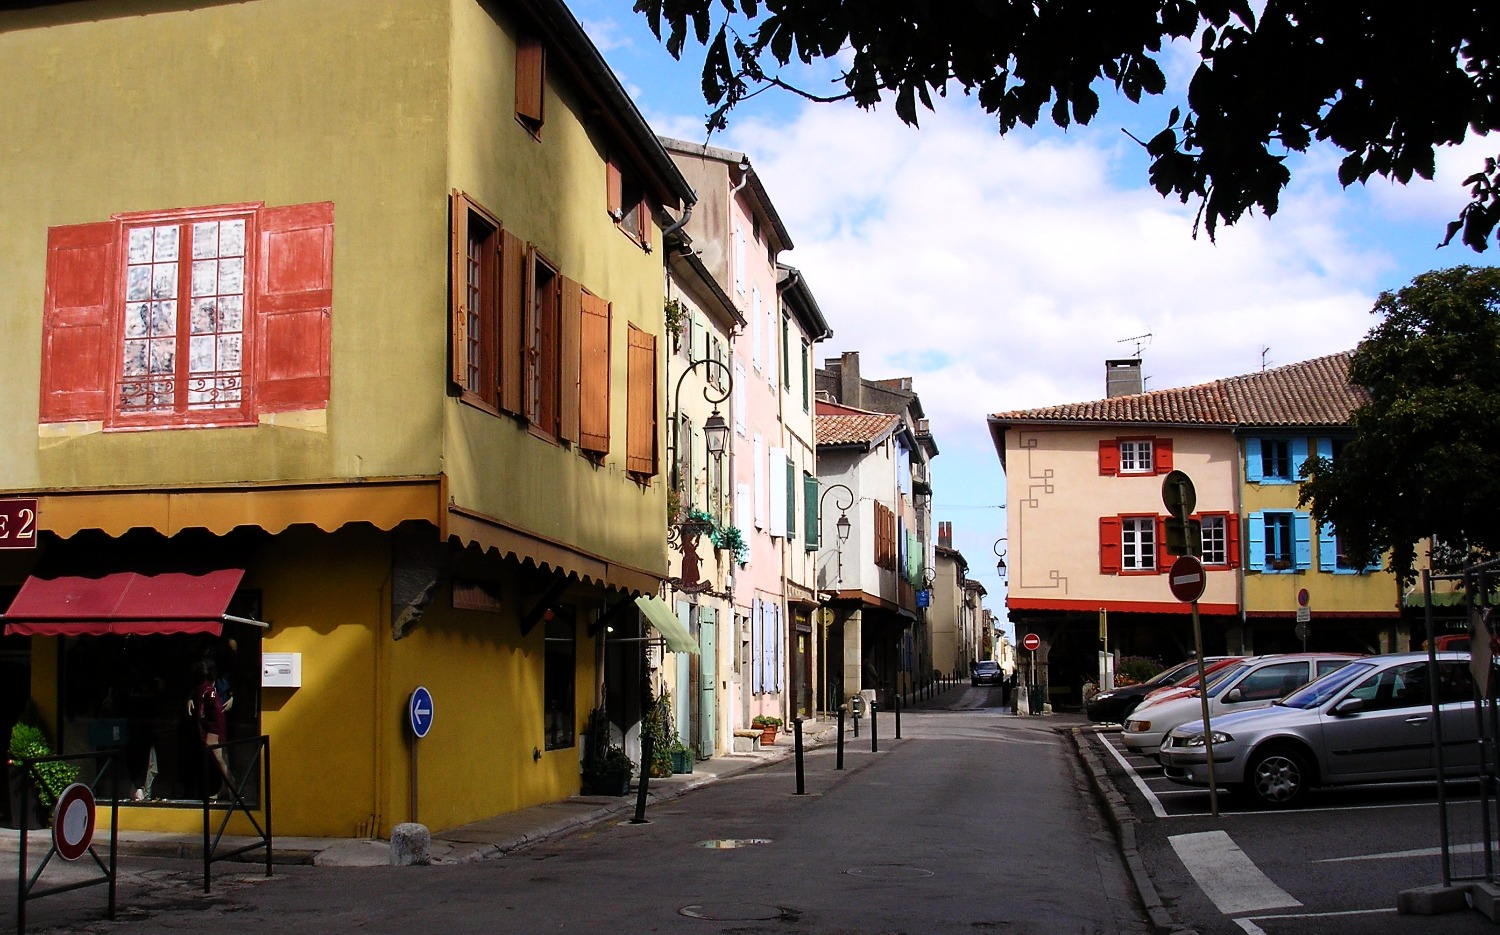 Street in Mirepoix France